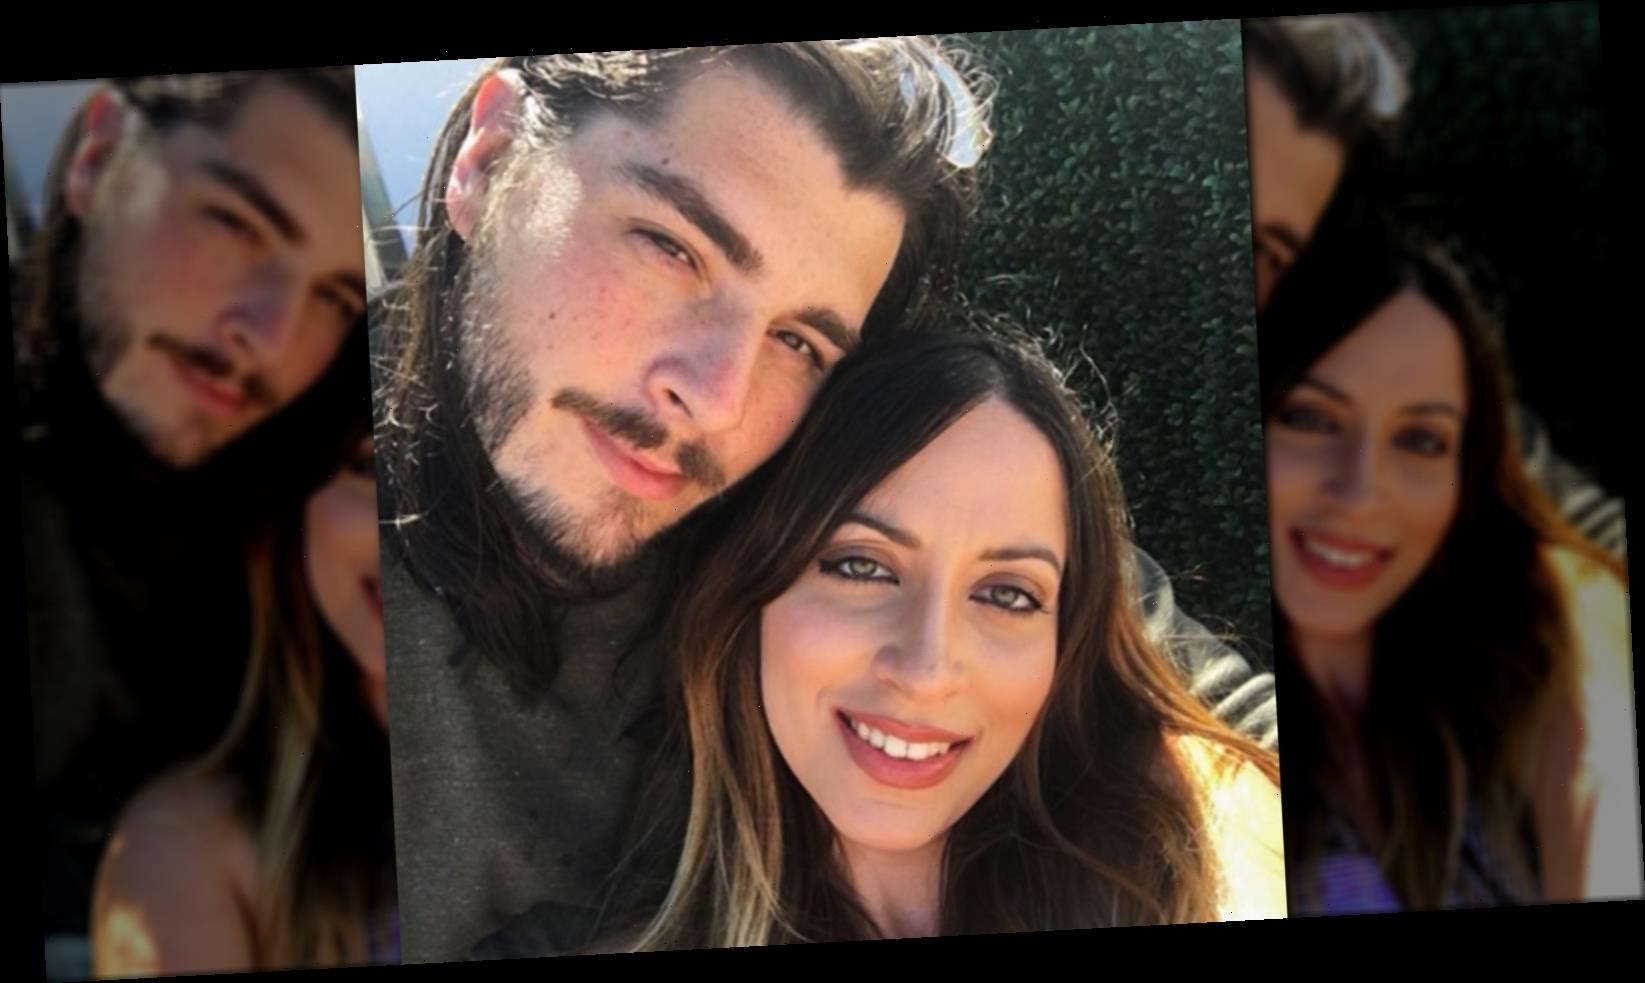 90 Day Fiance: Who are Andrew and Amira?